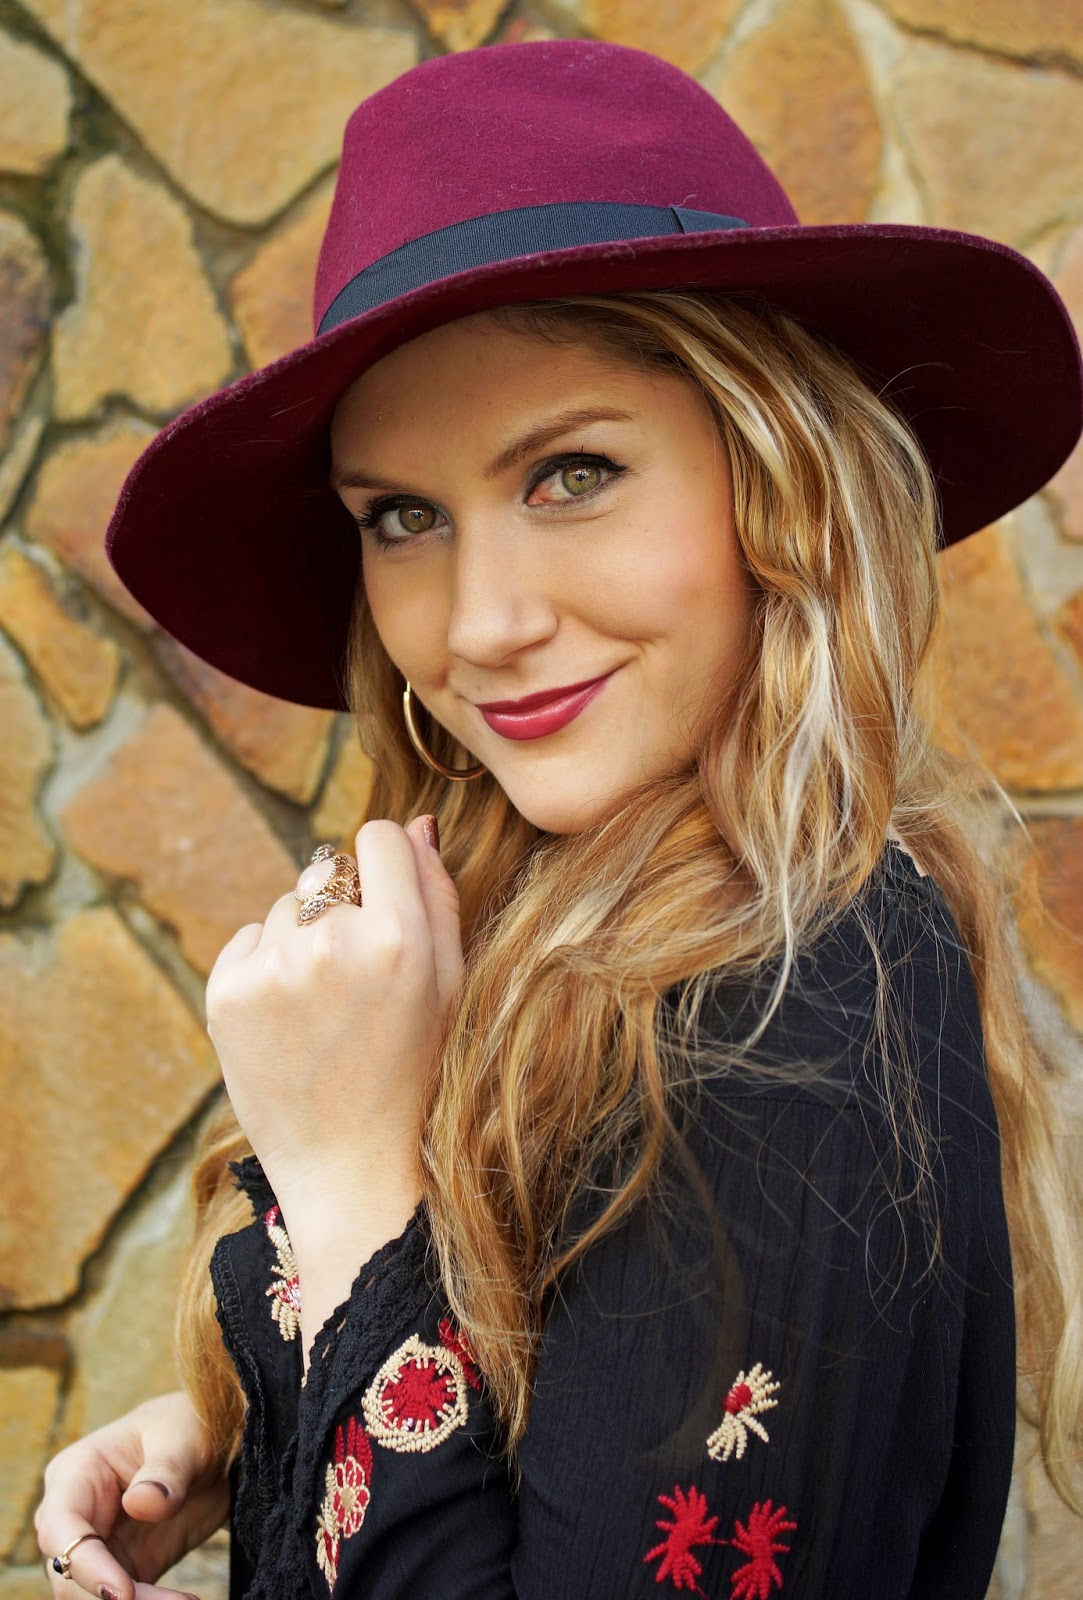 A floppy hat is the perfect accessory for a boho chic outfit!